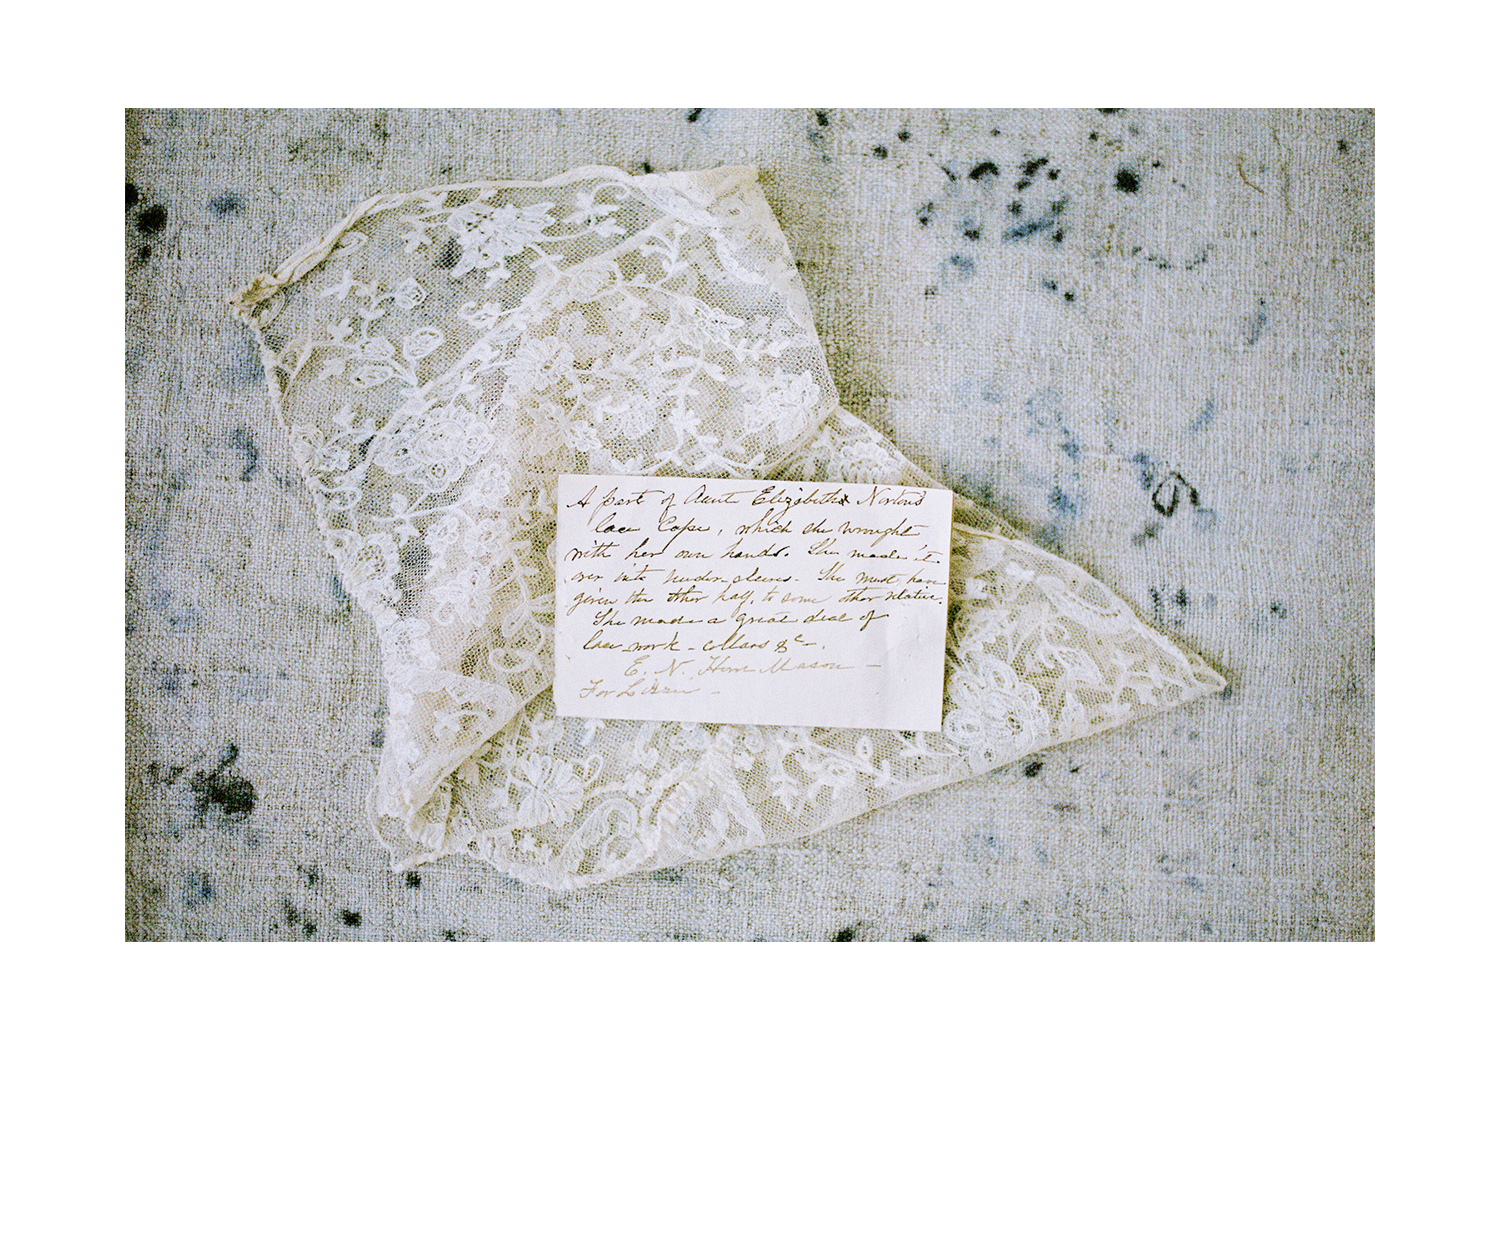 - Handmade Needle Lace, c. 1800's. Originally as part of a cape, this fragment documents the provenance and story of the original maker.